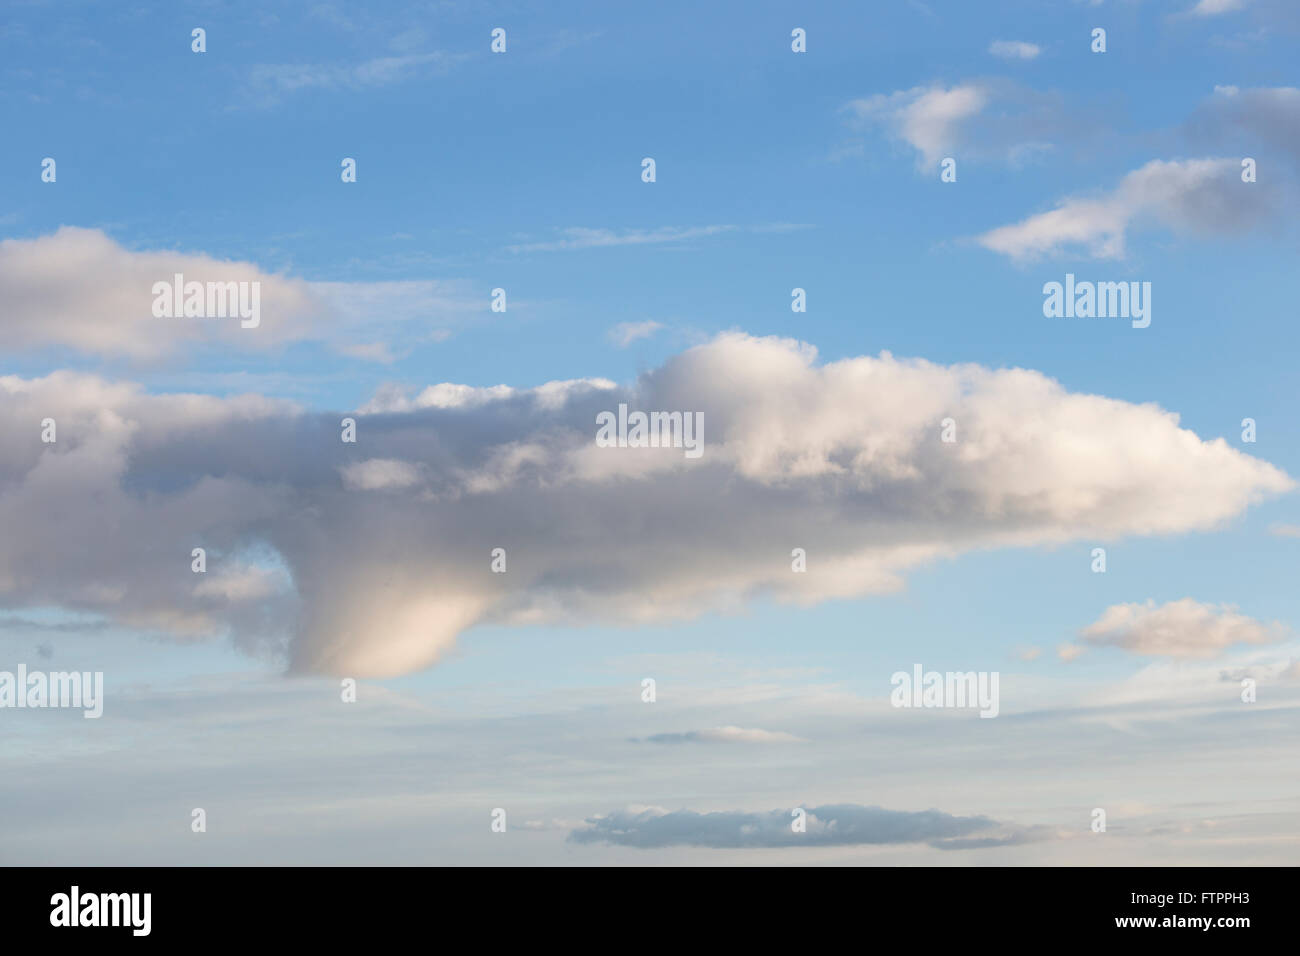 Towering Cumulus cloud formation - Stock Image